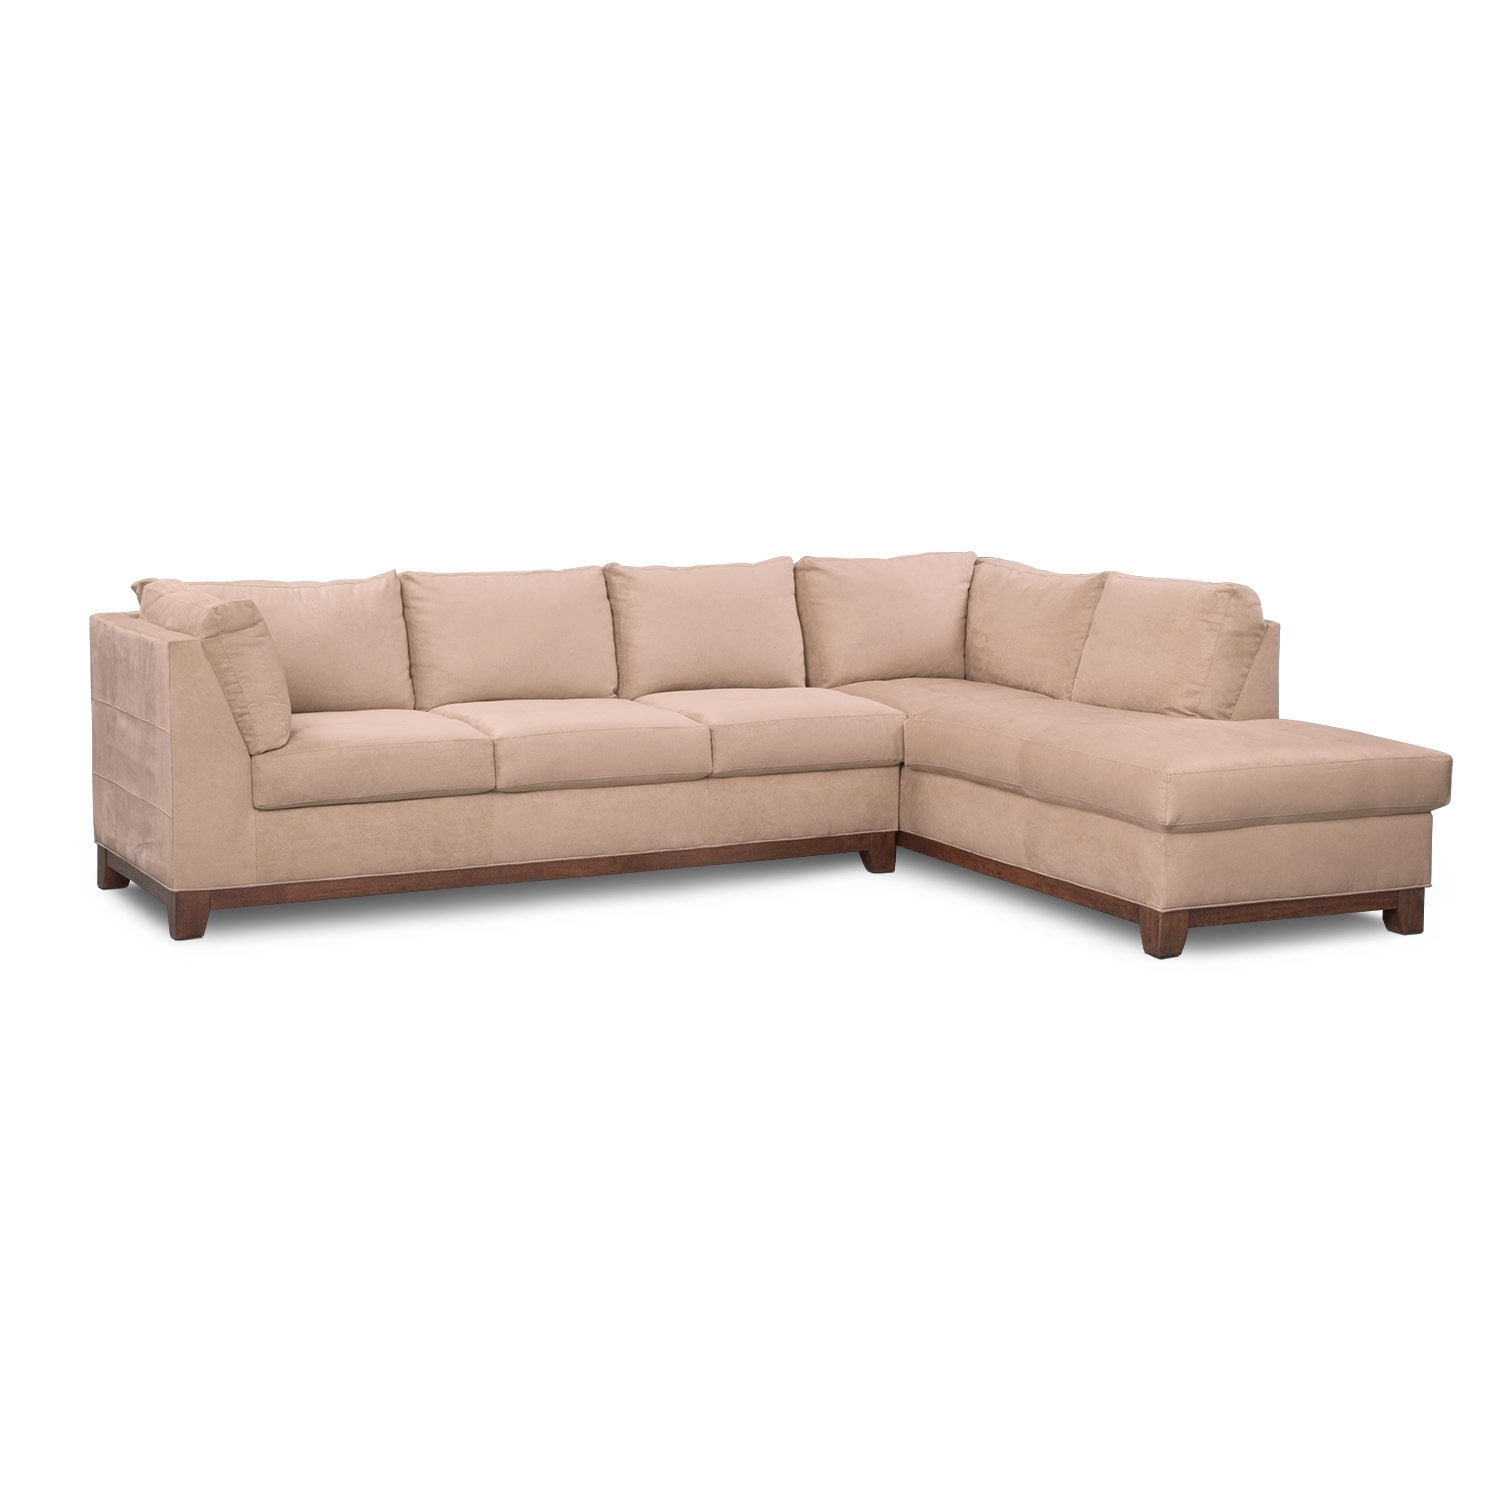 Superbe Living Room Furniture   Soho 2 Piece Sectional With Chaise